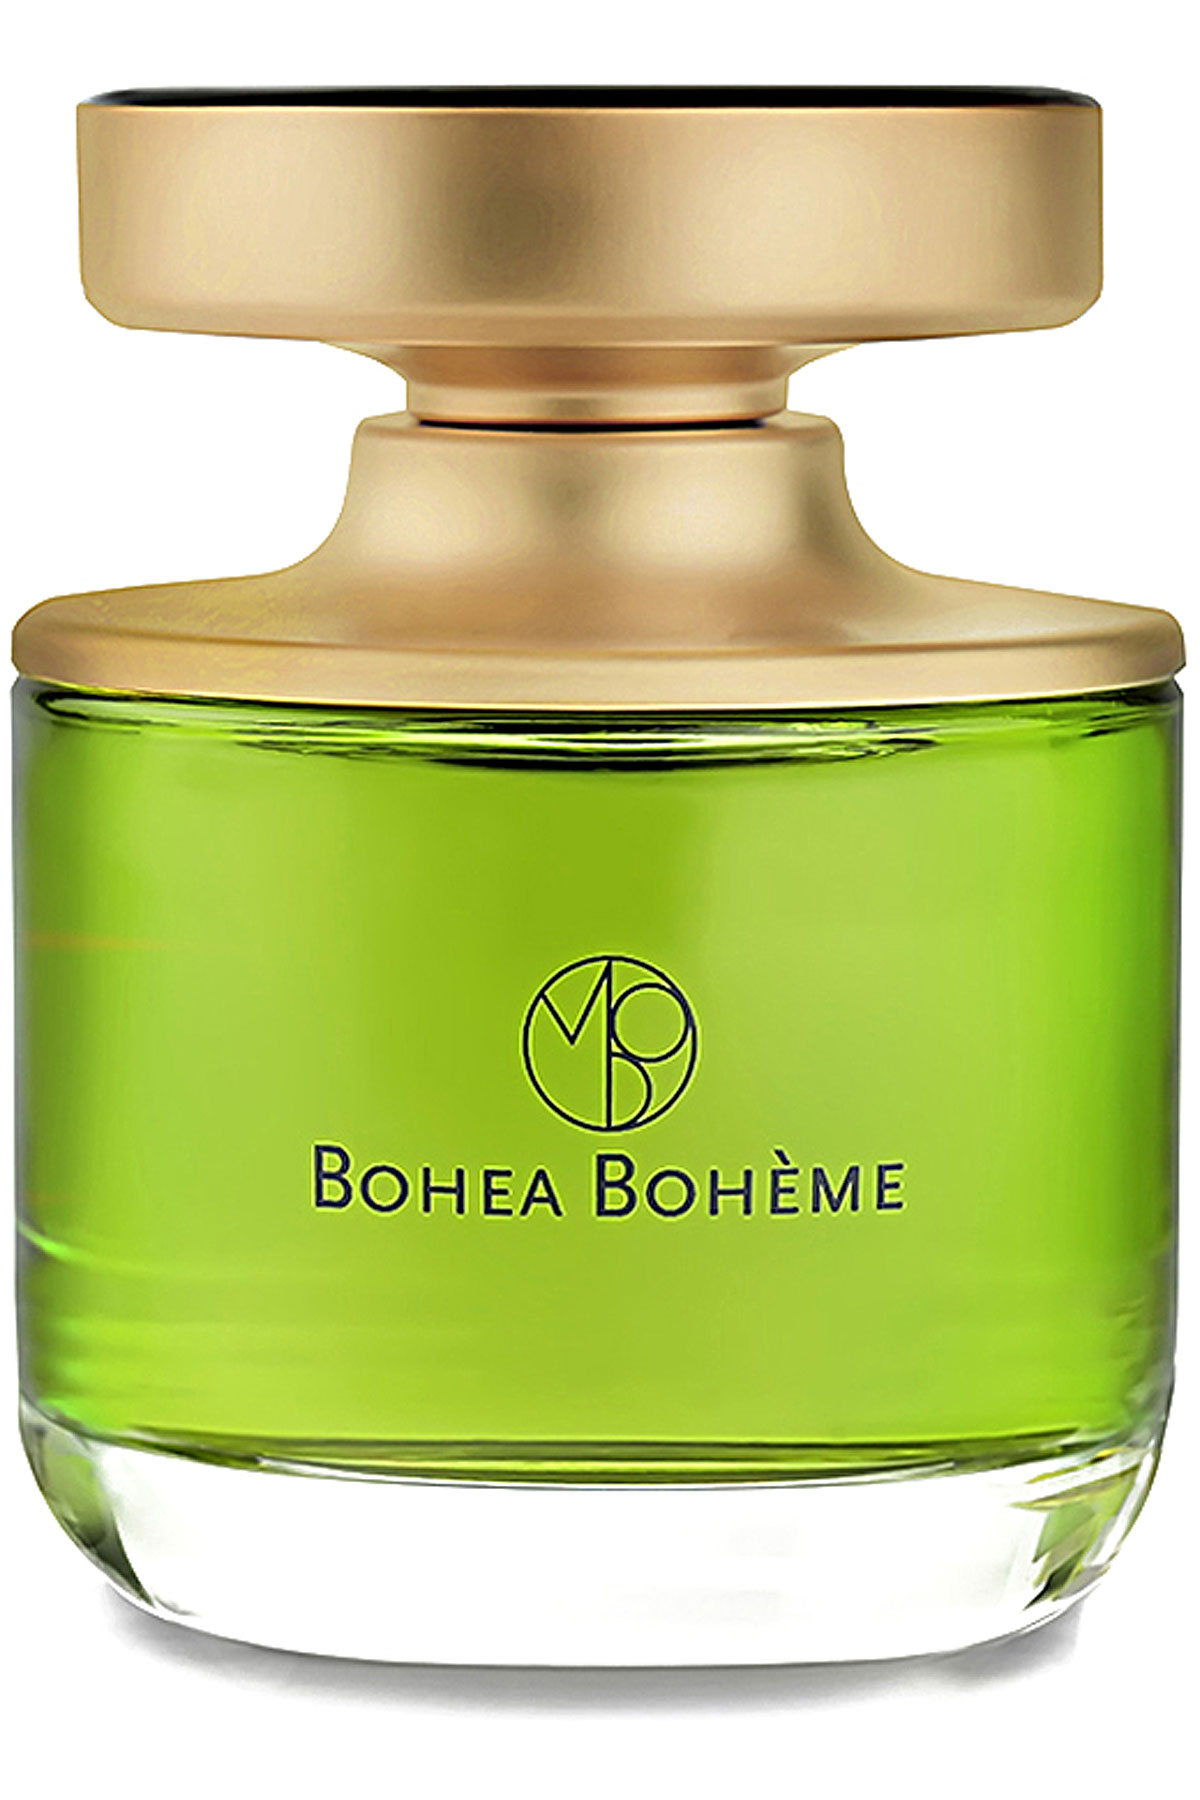 Mona di Orio Fragrances for Women On Sale, Bohea Boheme - Eau De Parfum - 75 Ml, 2019, 75 ml